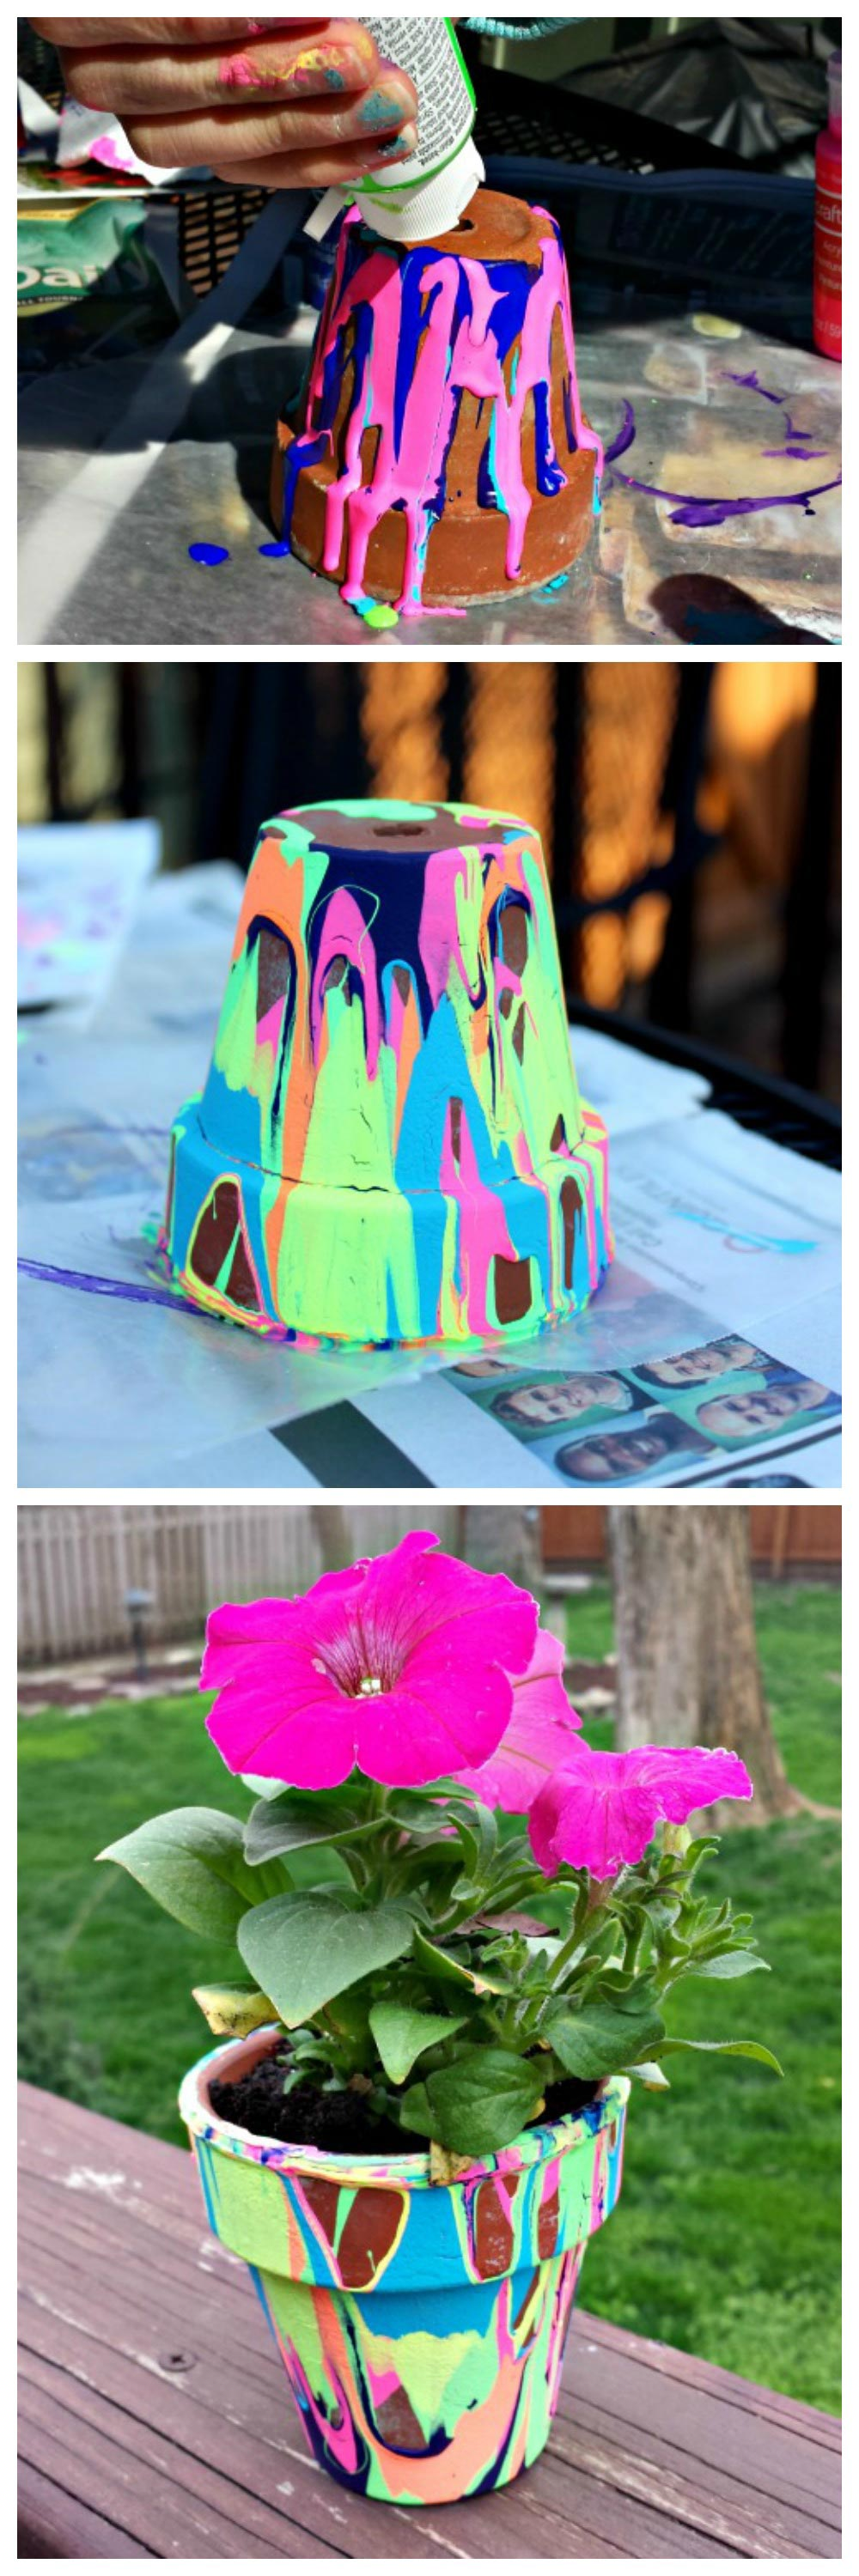 Wonderful DIY gift idea for teacher appreciation or Mother's Day